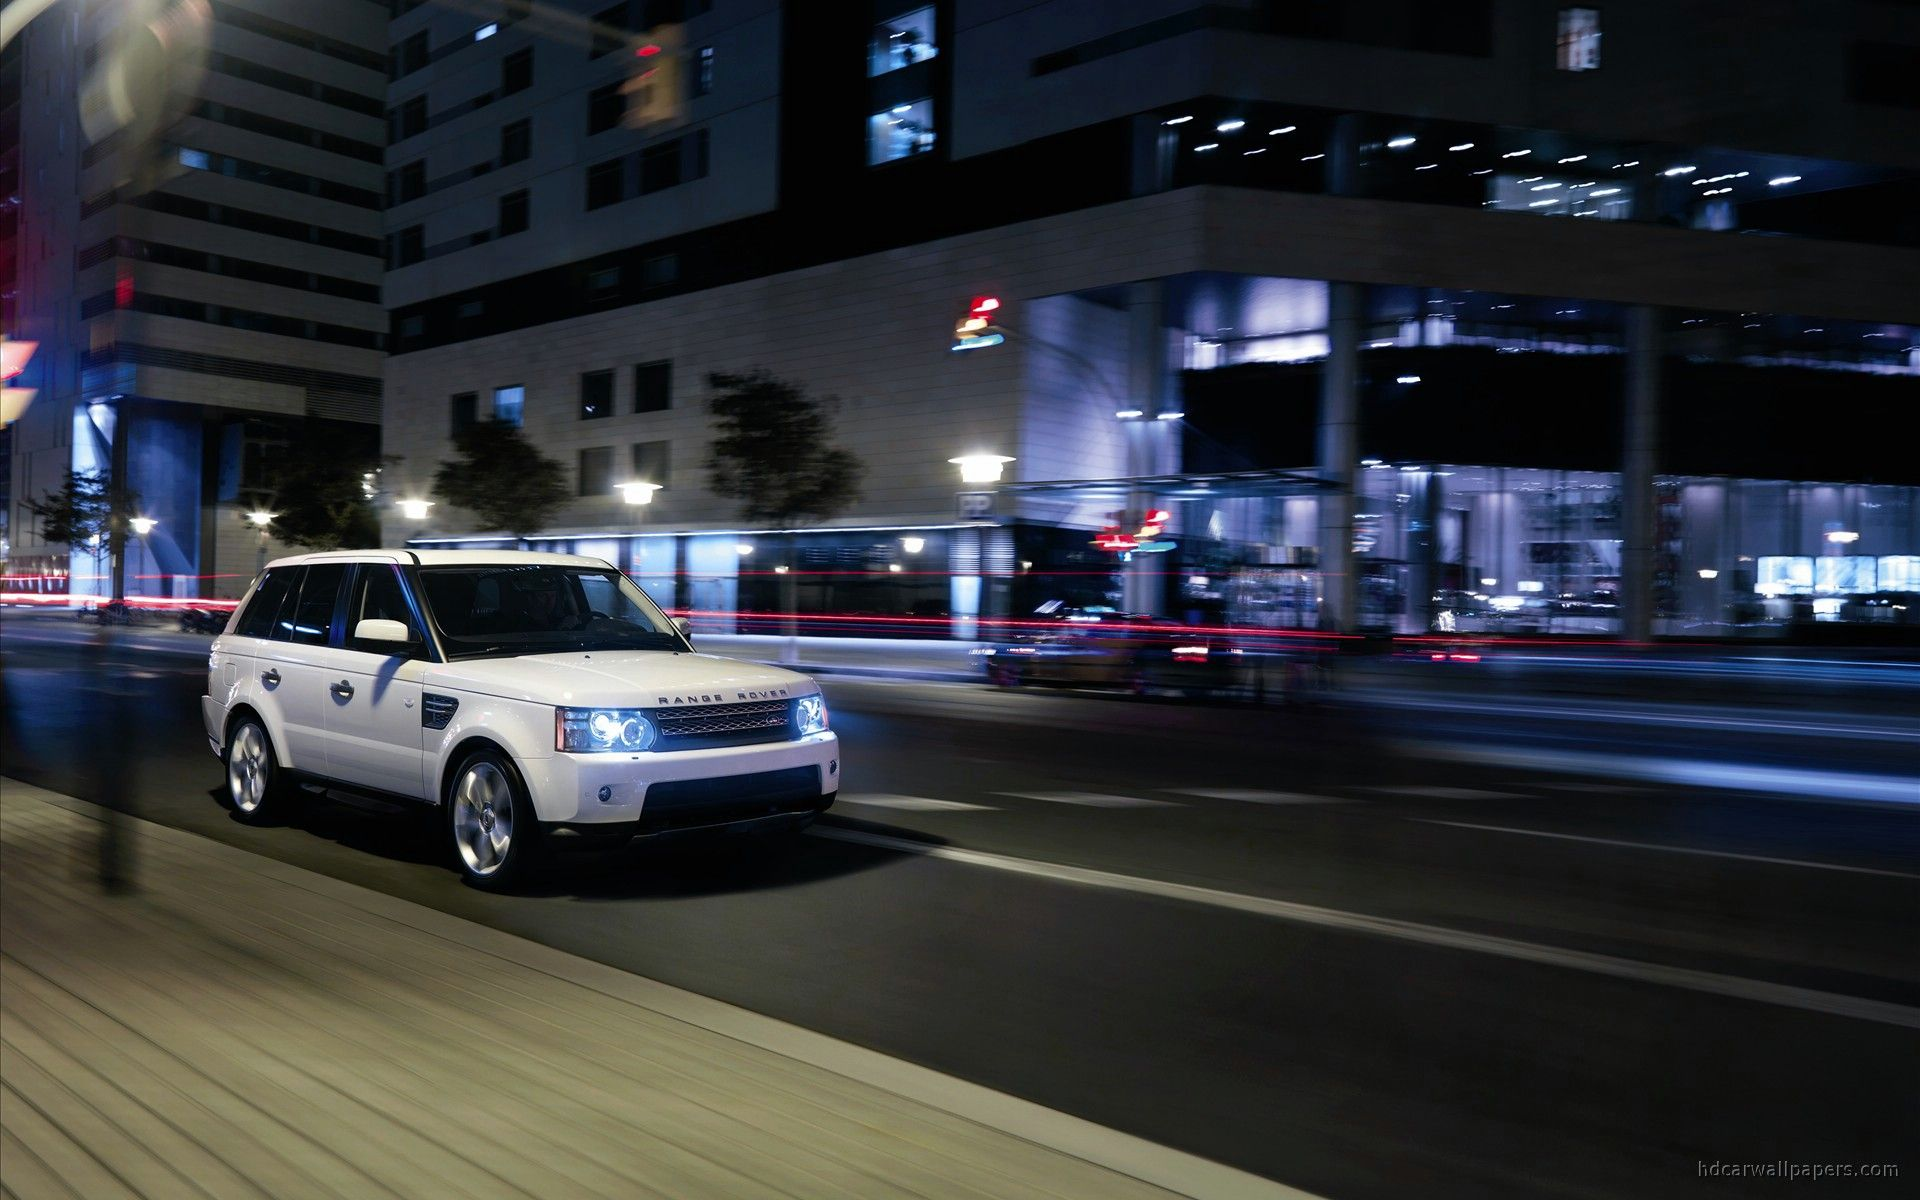 2011 land rover dc100 concept side 2 1280x960 wallpaper - Range Rover Wallpaper Hd 1680 1050 Range Rover Sport Wallpapers 40 Wallpapers Adorable Wallpapers Wallpapers Pinterest Sports Wallpapers And